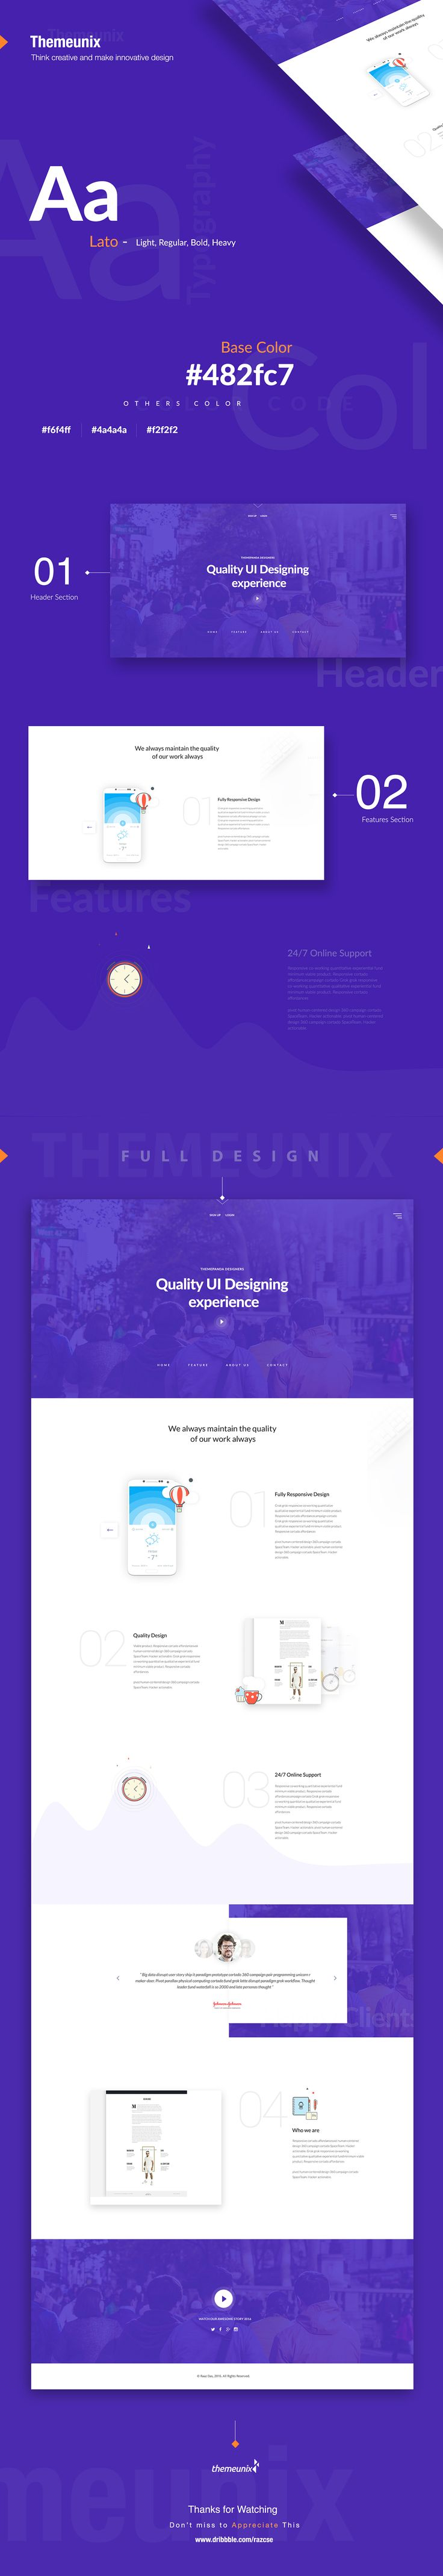 Themeunix: Web Landing page Design on Behance